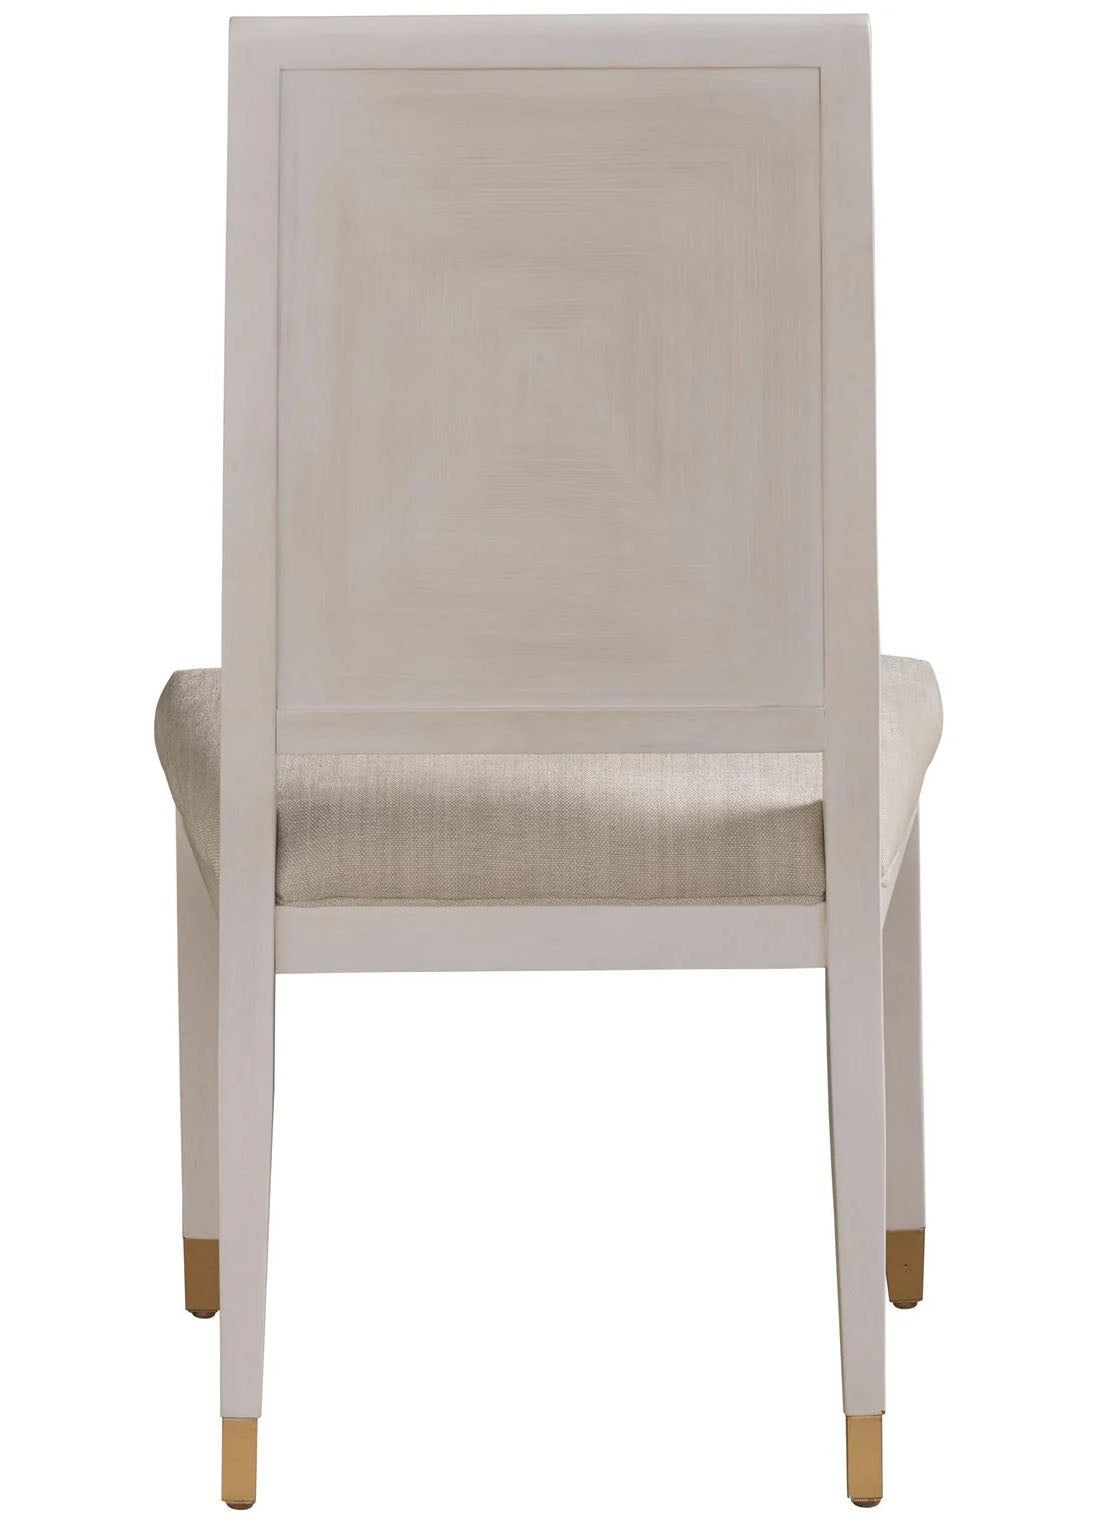 Miranda Kerr Love Joy Bliss Side Chair - MJM Furniture